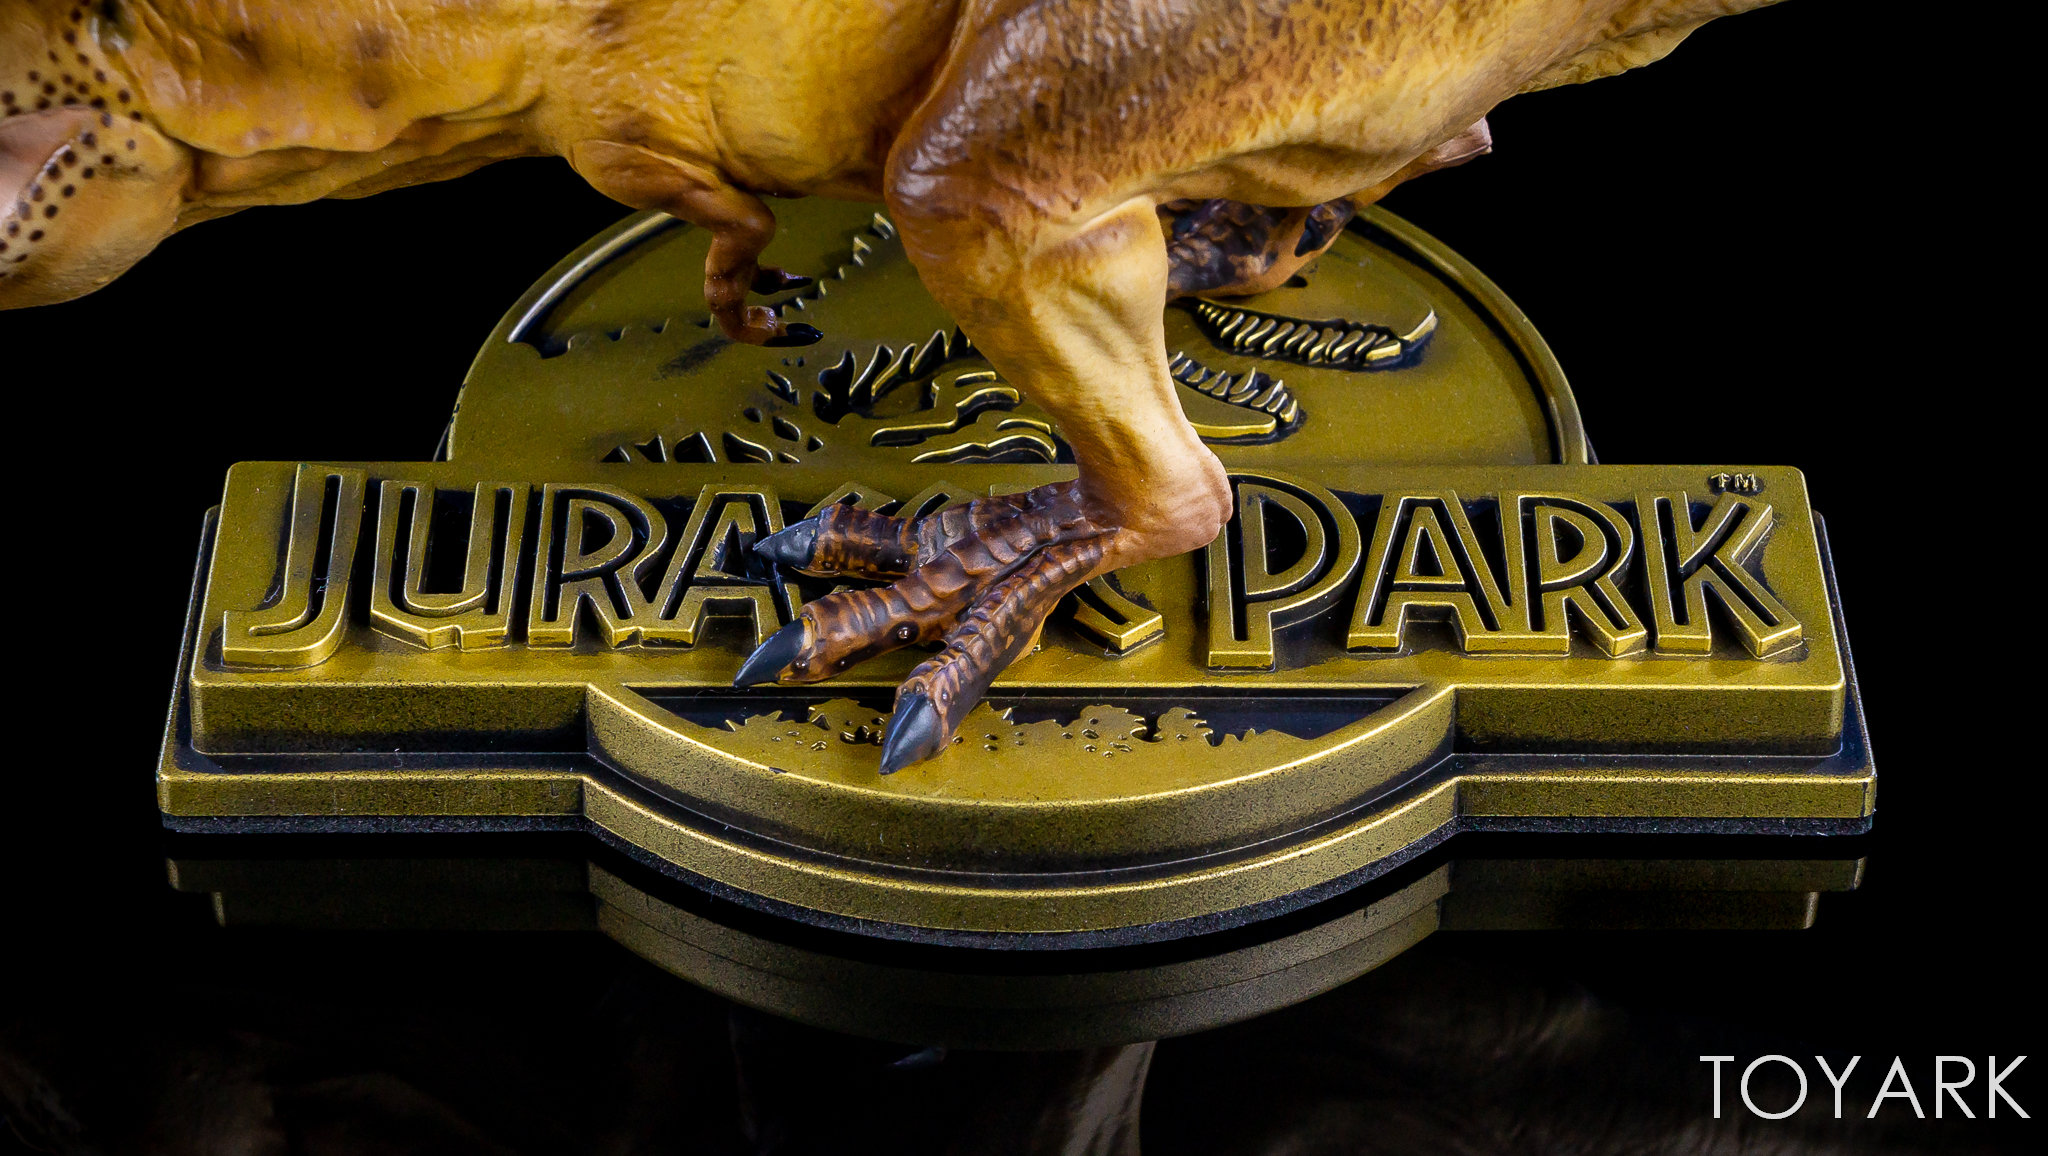 http://news.toyark.com/wp-content/uploads/sites/4/2018/04/Chronicle-ThinkGeek-Jurassic-Park-T-Rex-013.jpg